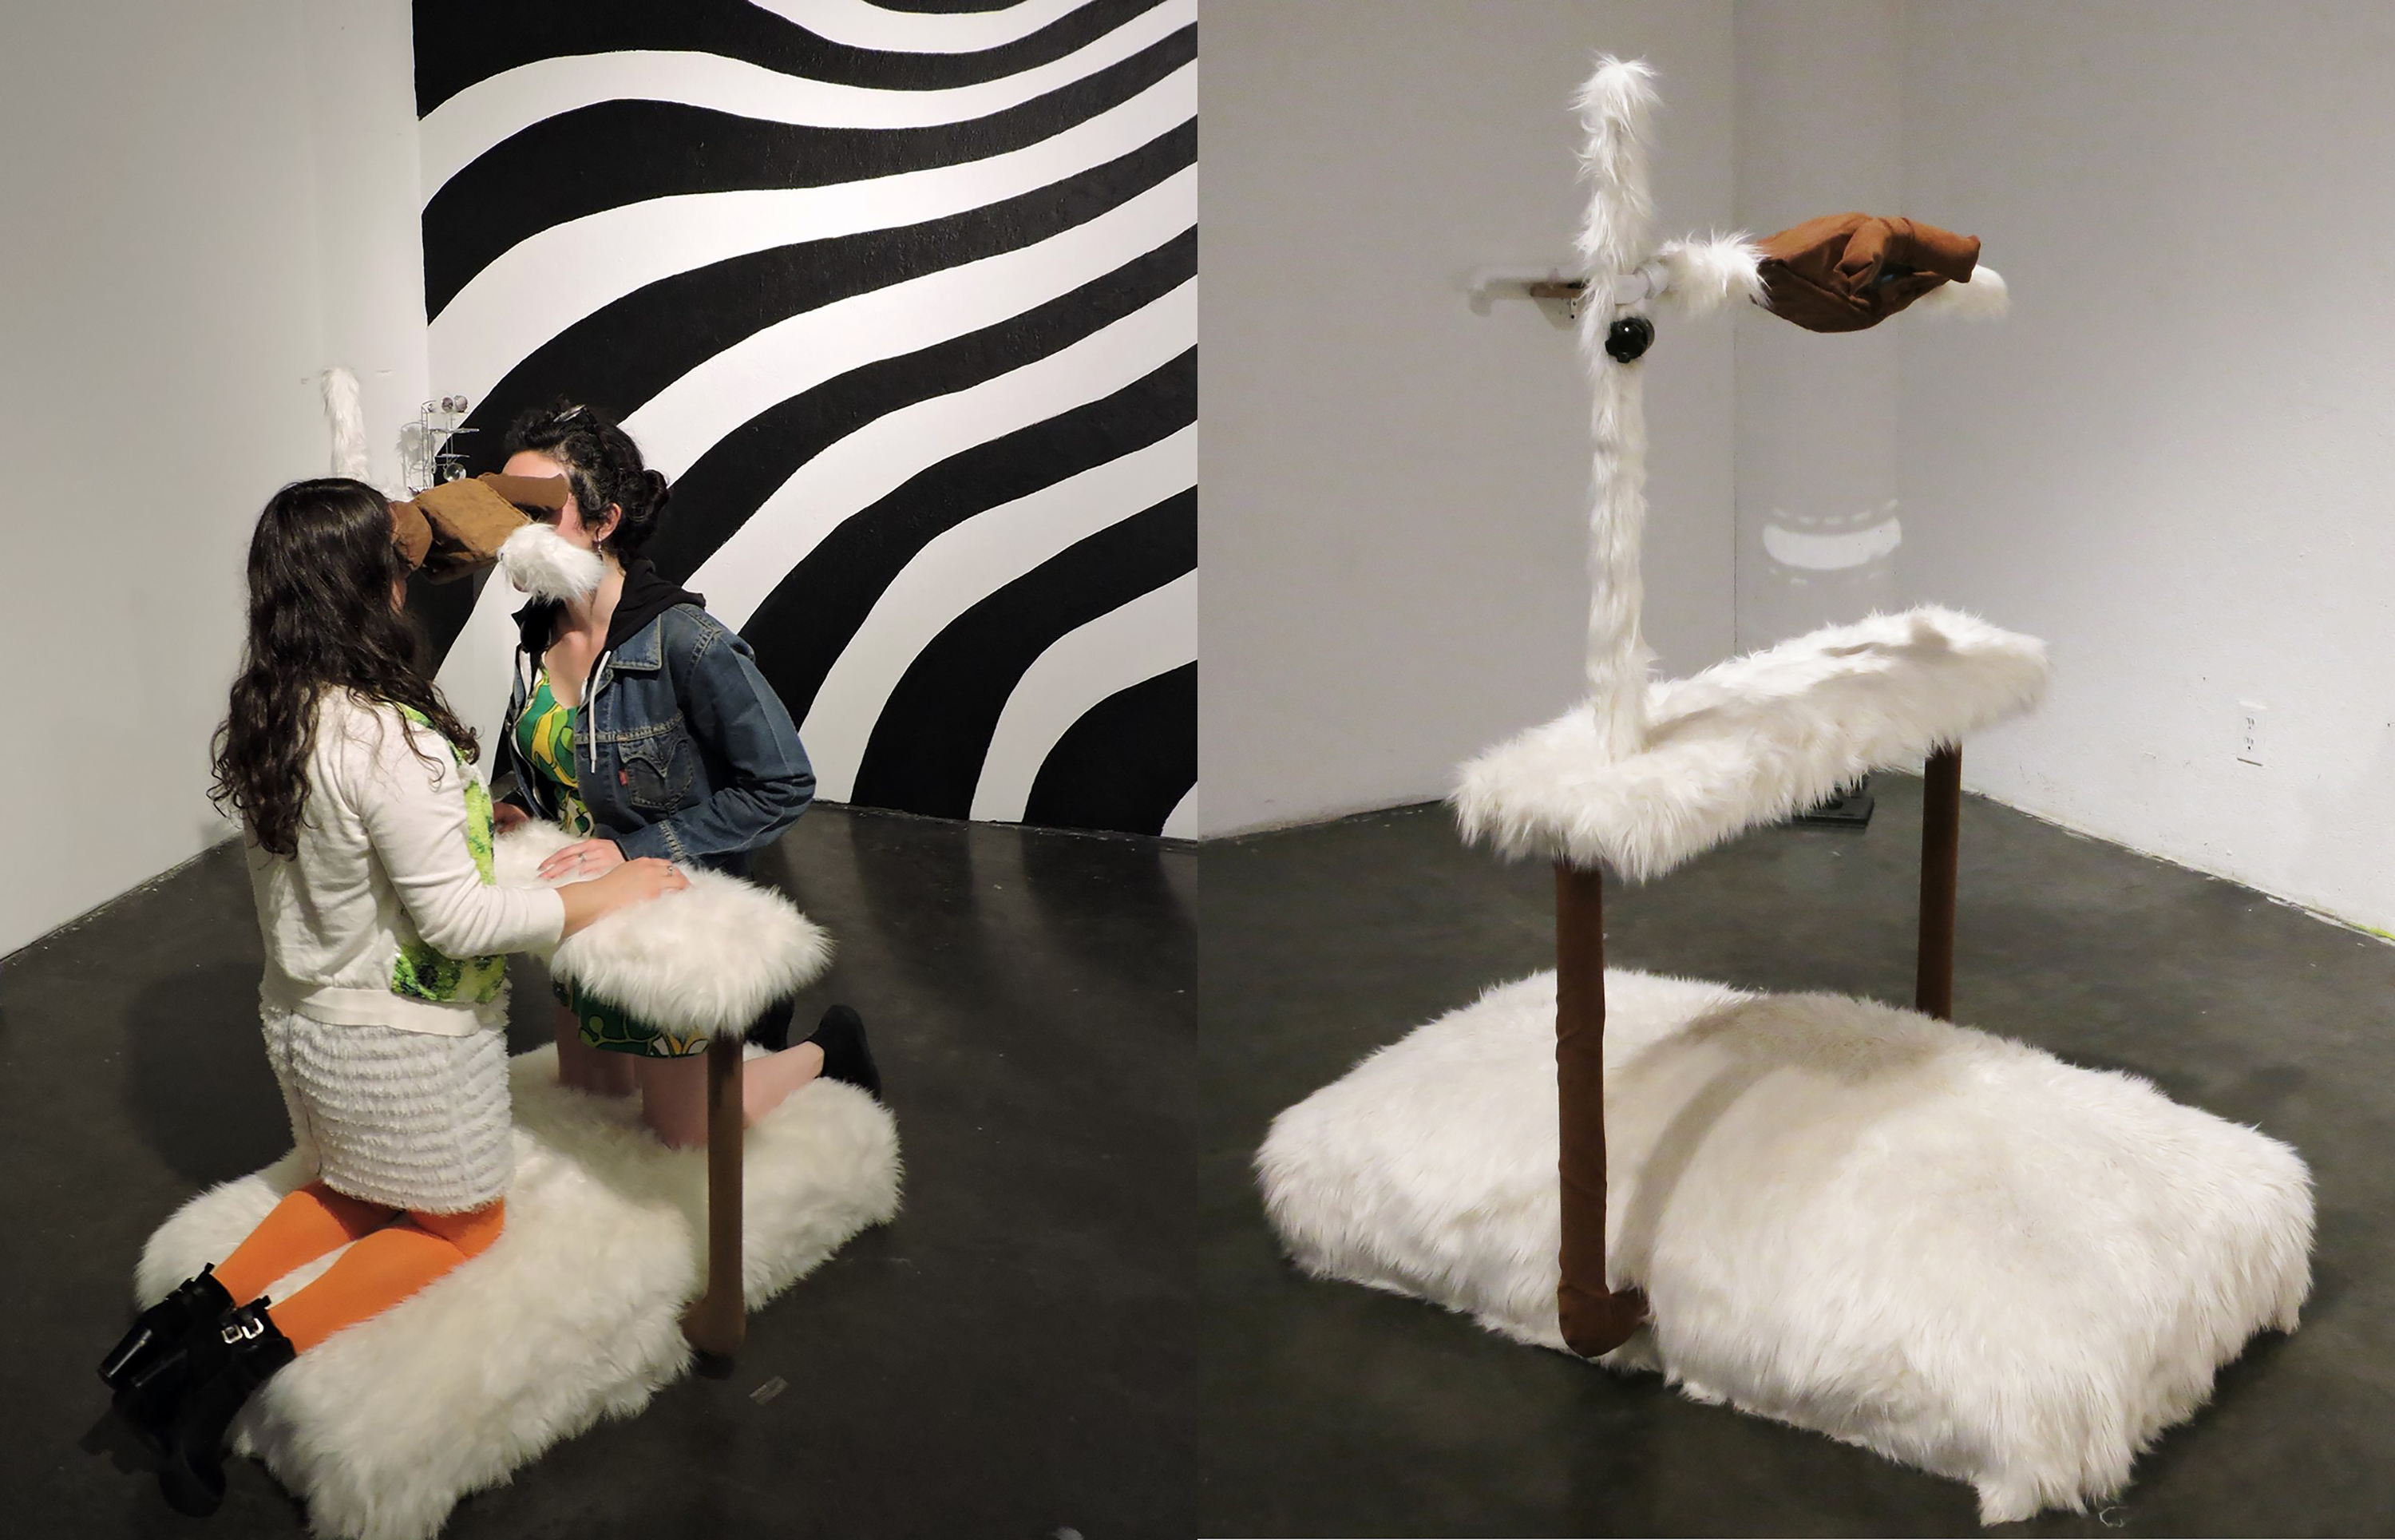 Synthetic  fur,  mirror,  wood,  pvc  pipe  and  pivot  ball,  fabric,  cotton  batting,  polyester  fiberfill,  cymbal  stand  wind  metal  knot,  2016